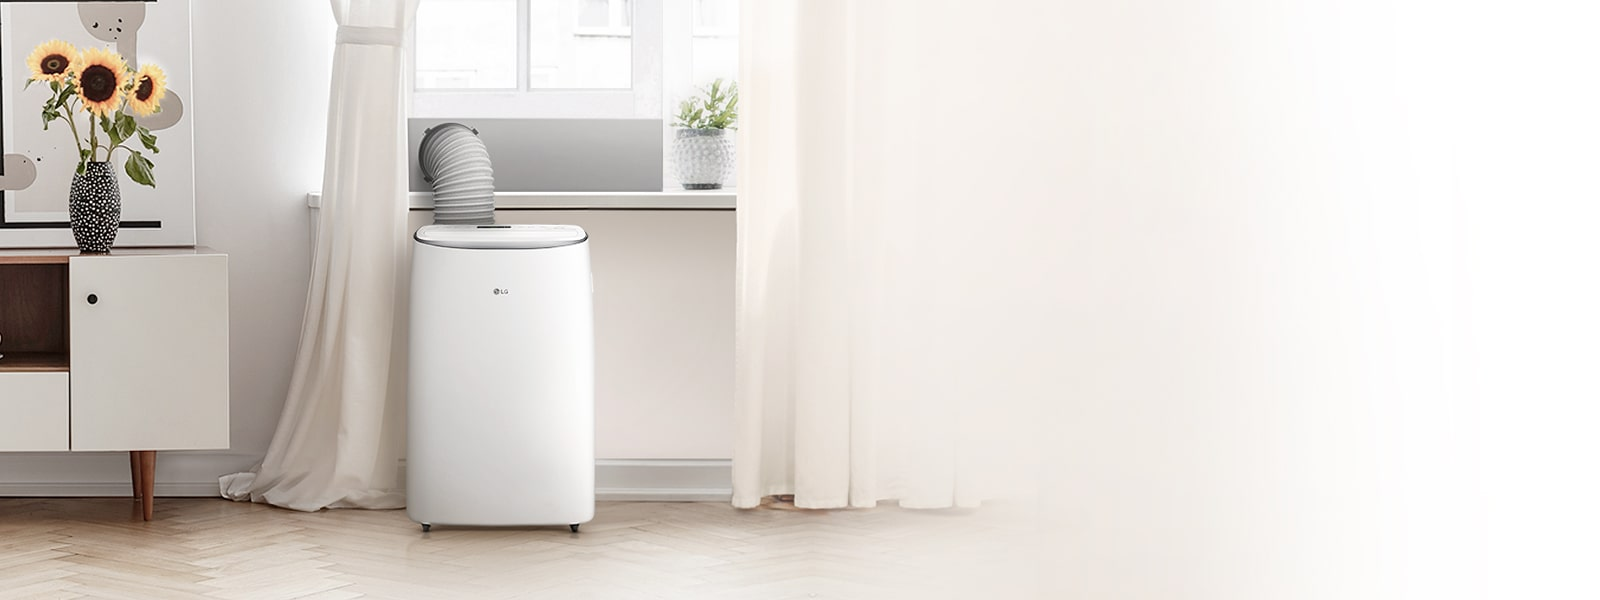 LG Portable Air Conditioner Units: Keep Cool | LG USA